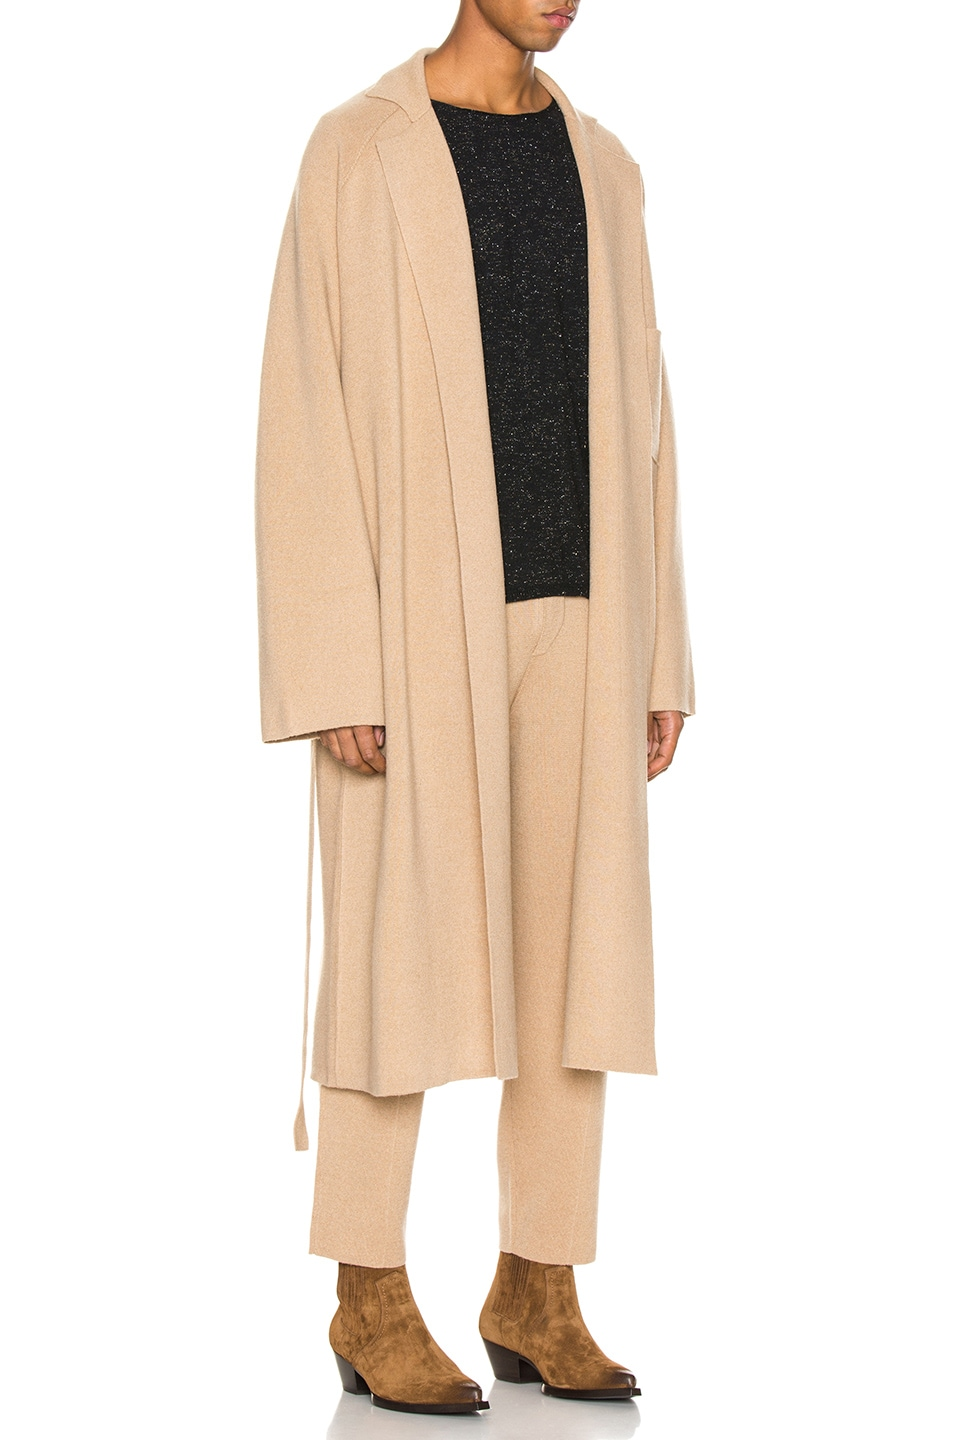 Image 3 of Haider Ackermann Knitted Coat in Invidia Camel